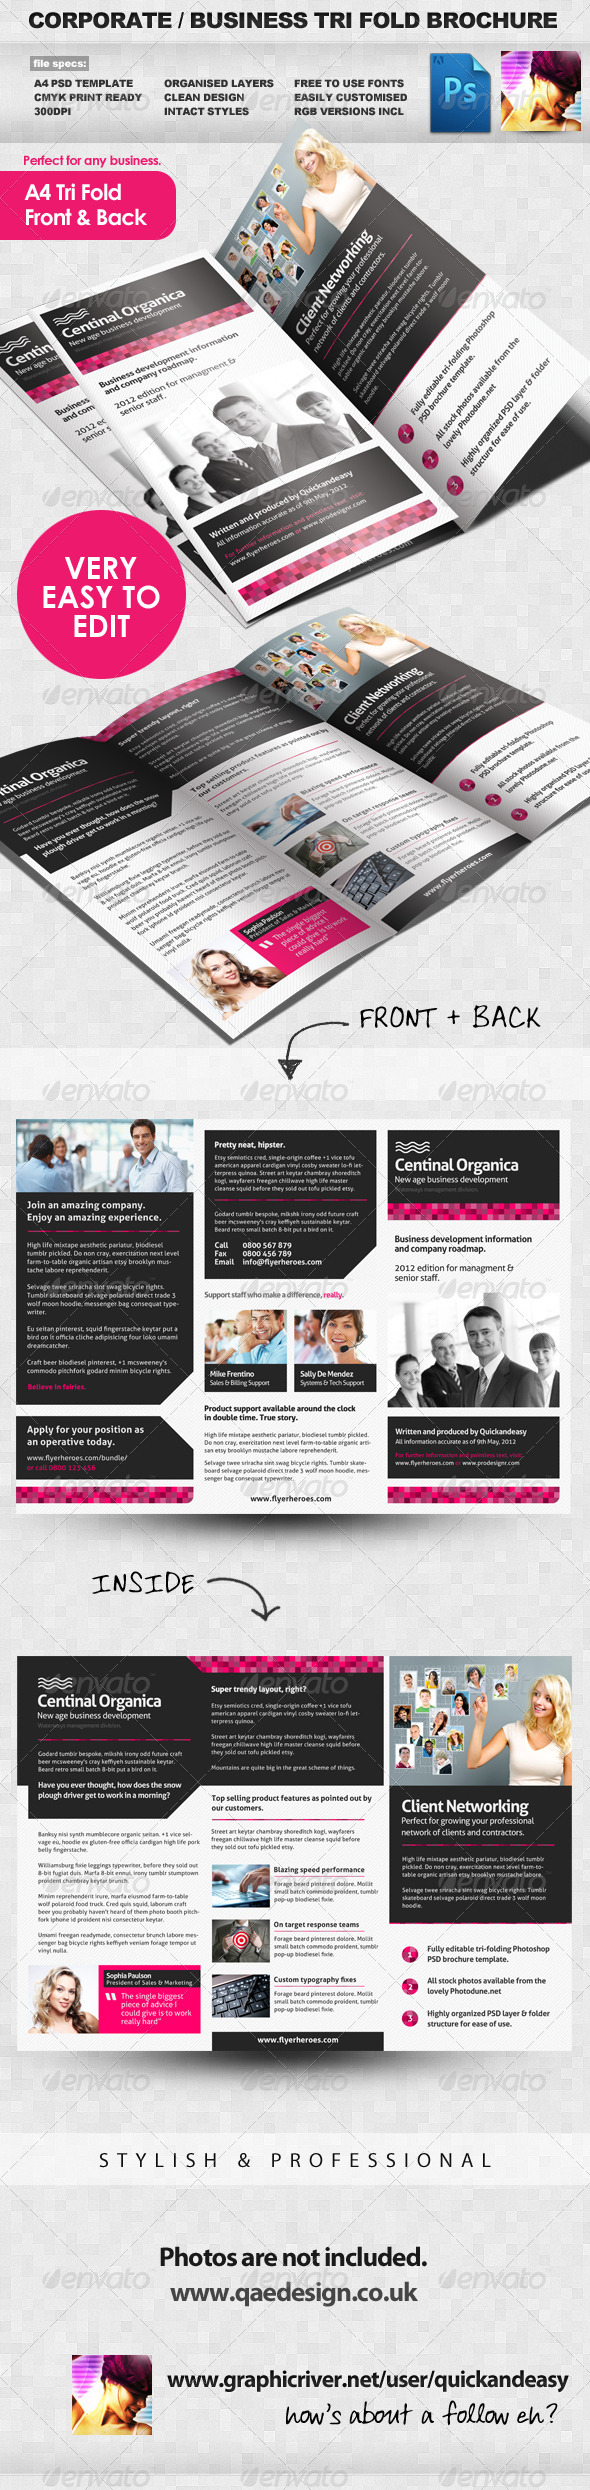 Corporate / Business Tri Fold Brochure - Corporate Brochures